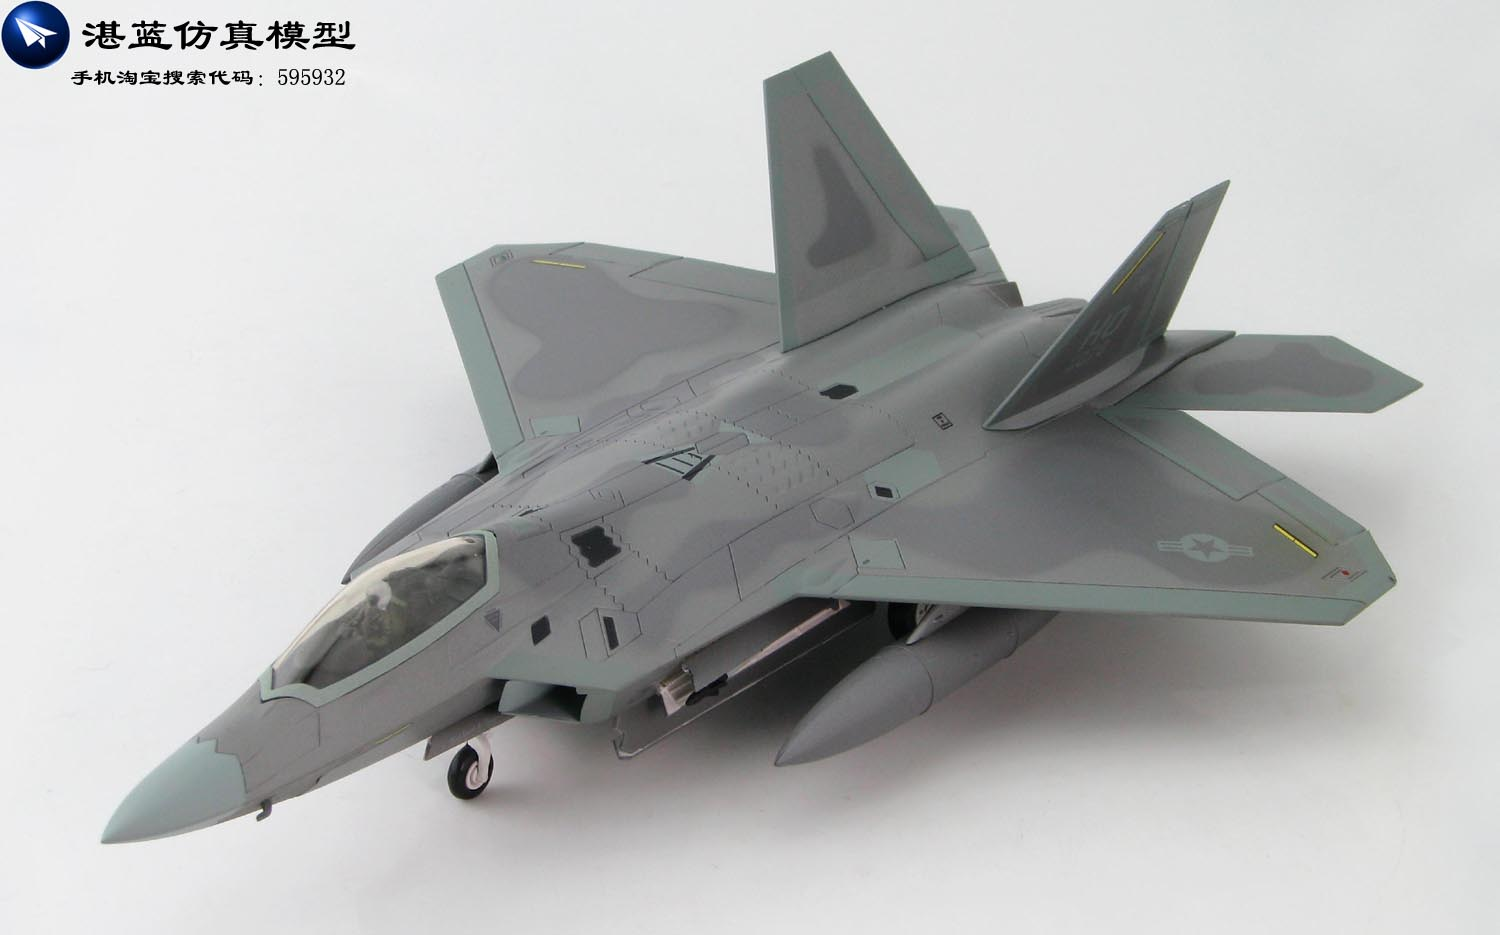 Brand New HOBBY MASTER 1/72 Scale USAF F-22 Raptor Fighter Diecast Metal Airplane Model Toy For Gift/Collection brand new 1 72 scale fighter model toys usa f a 18f super hornet fighter diecast metal plane model toy for gift collection